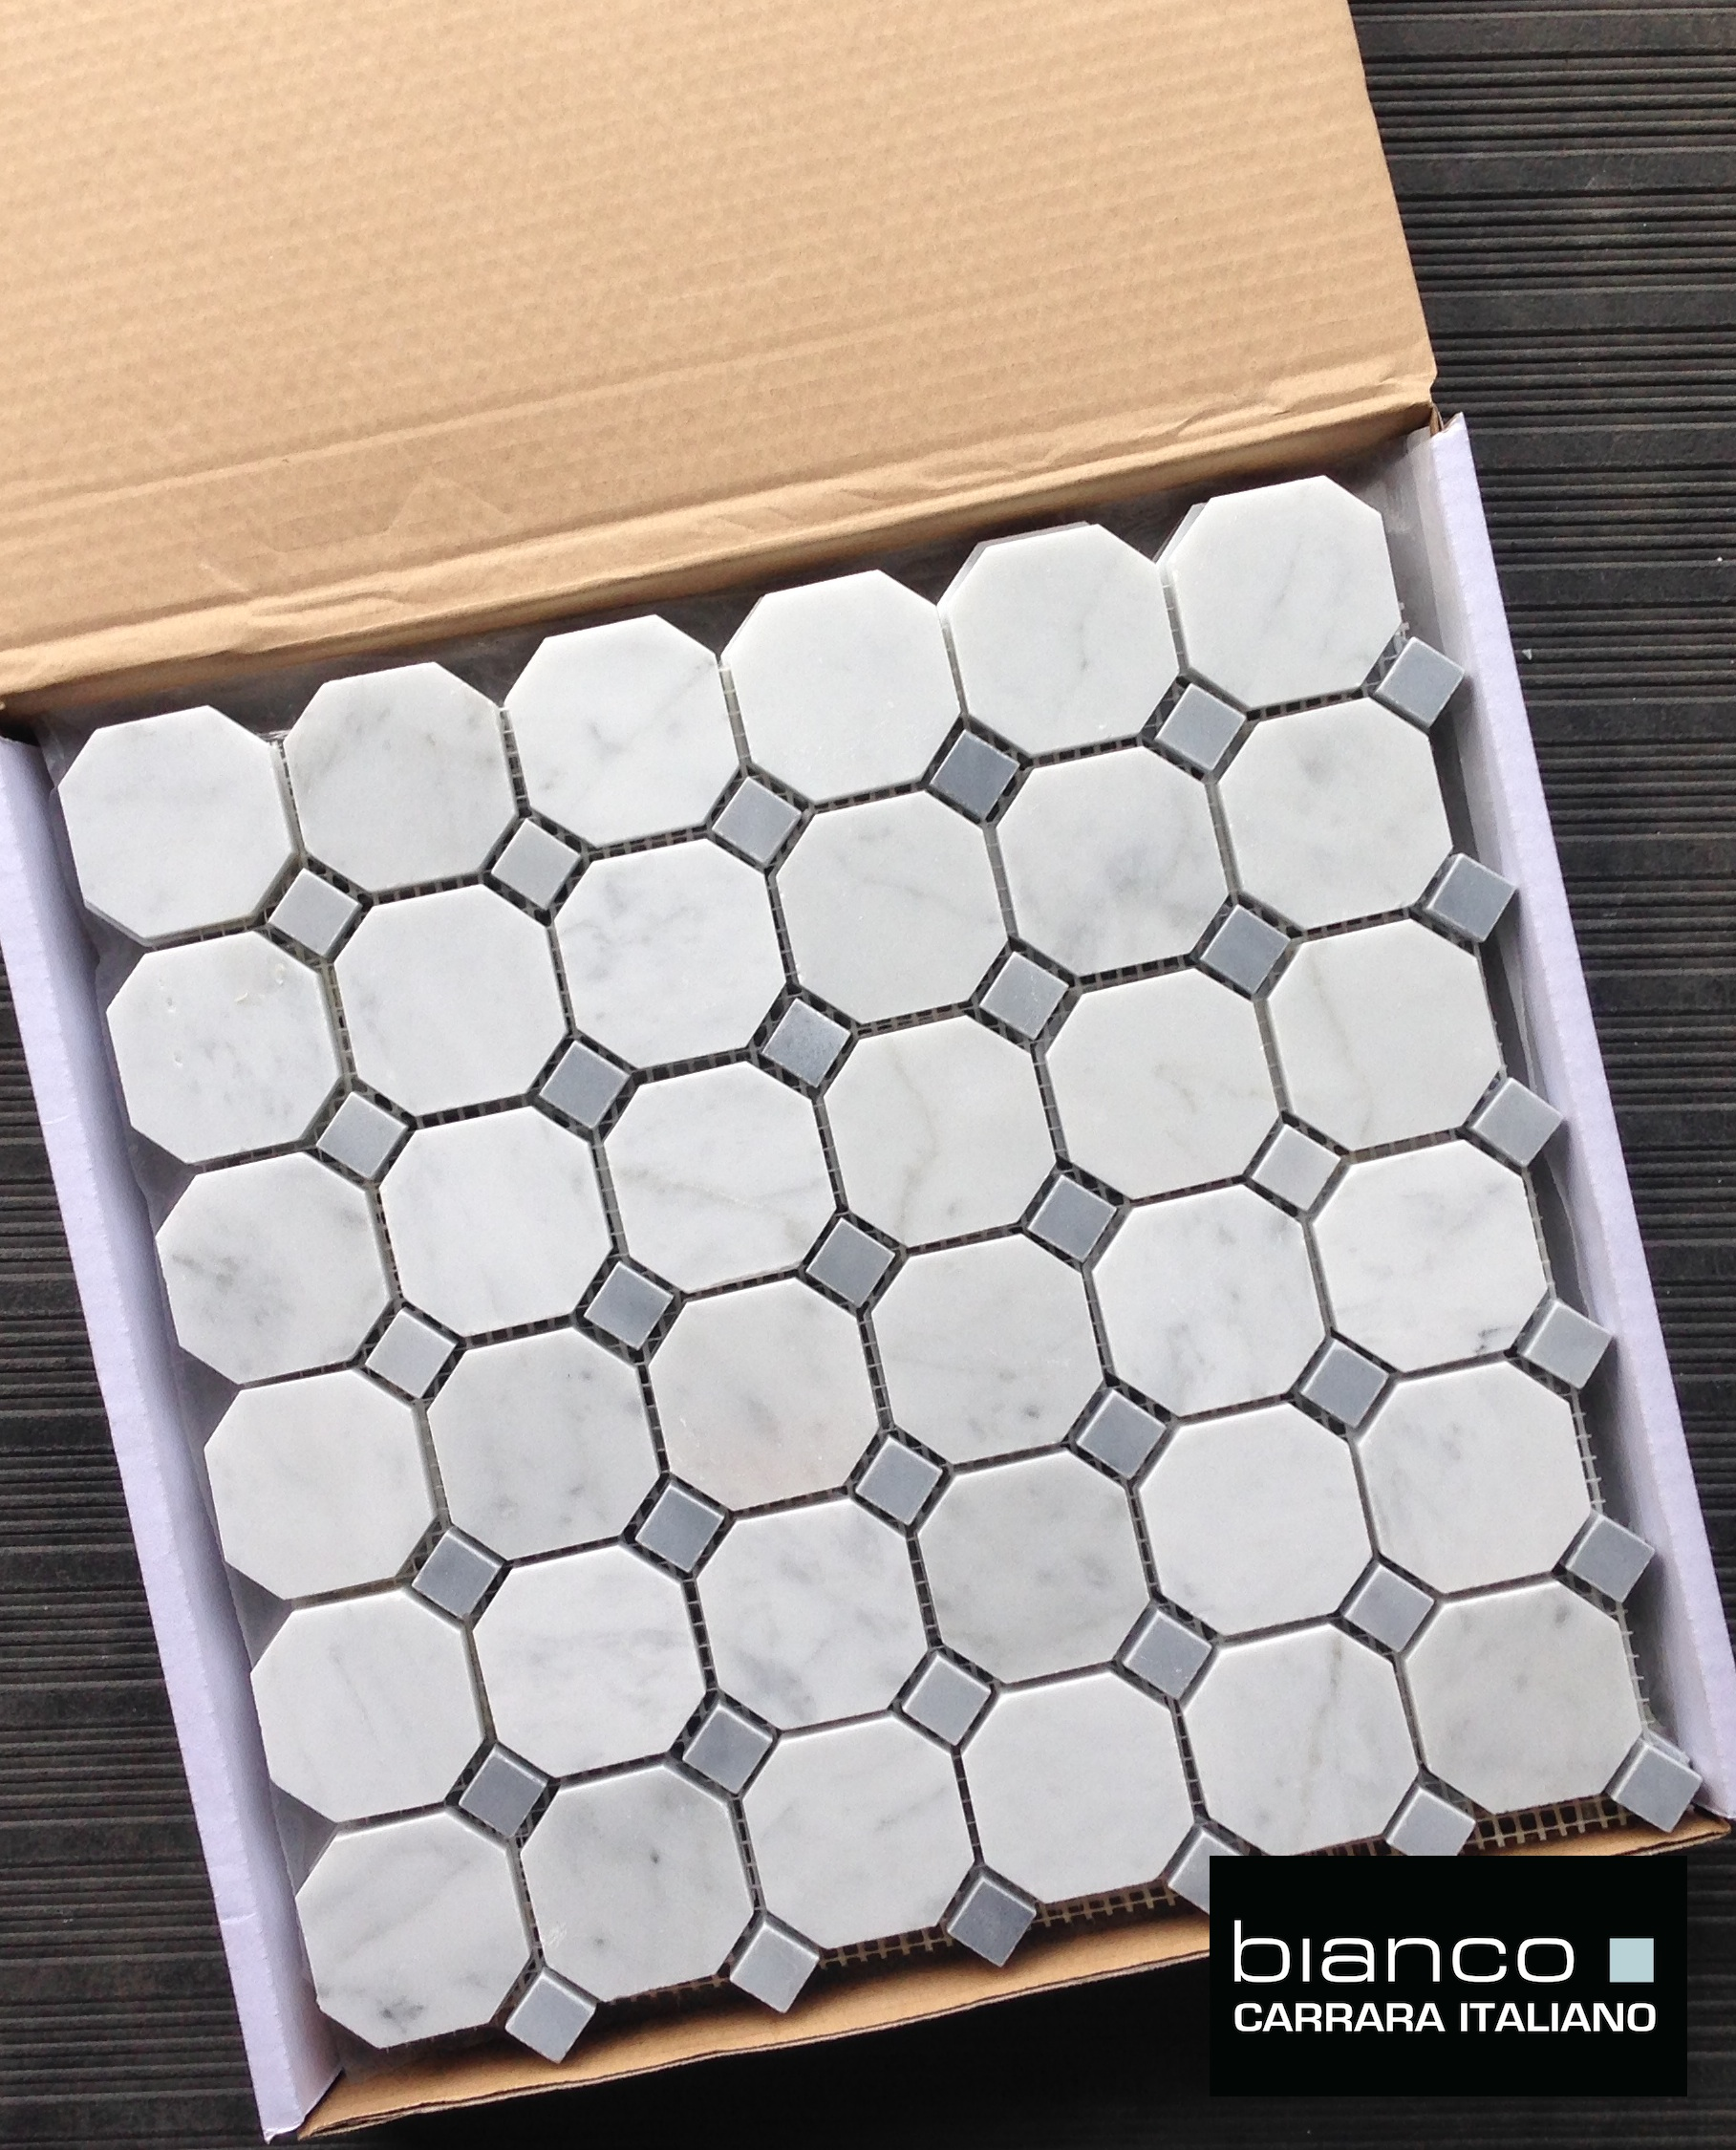 Carrara bianco 2 gray dot octagon mosaic tile the builder depot carrara bianco gray dot octagon mosaic tile dailygadgetfo Gallery